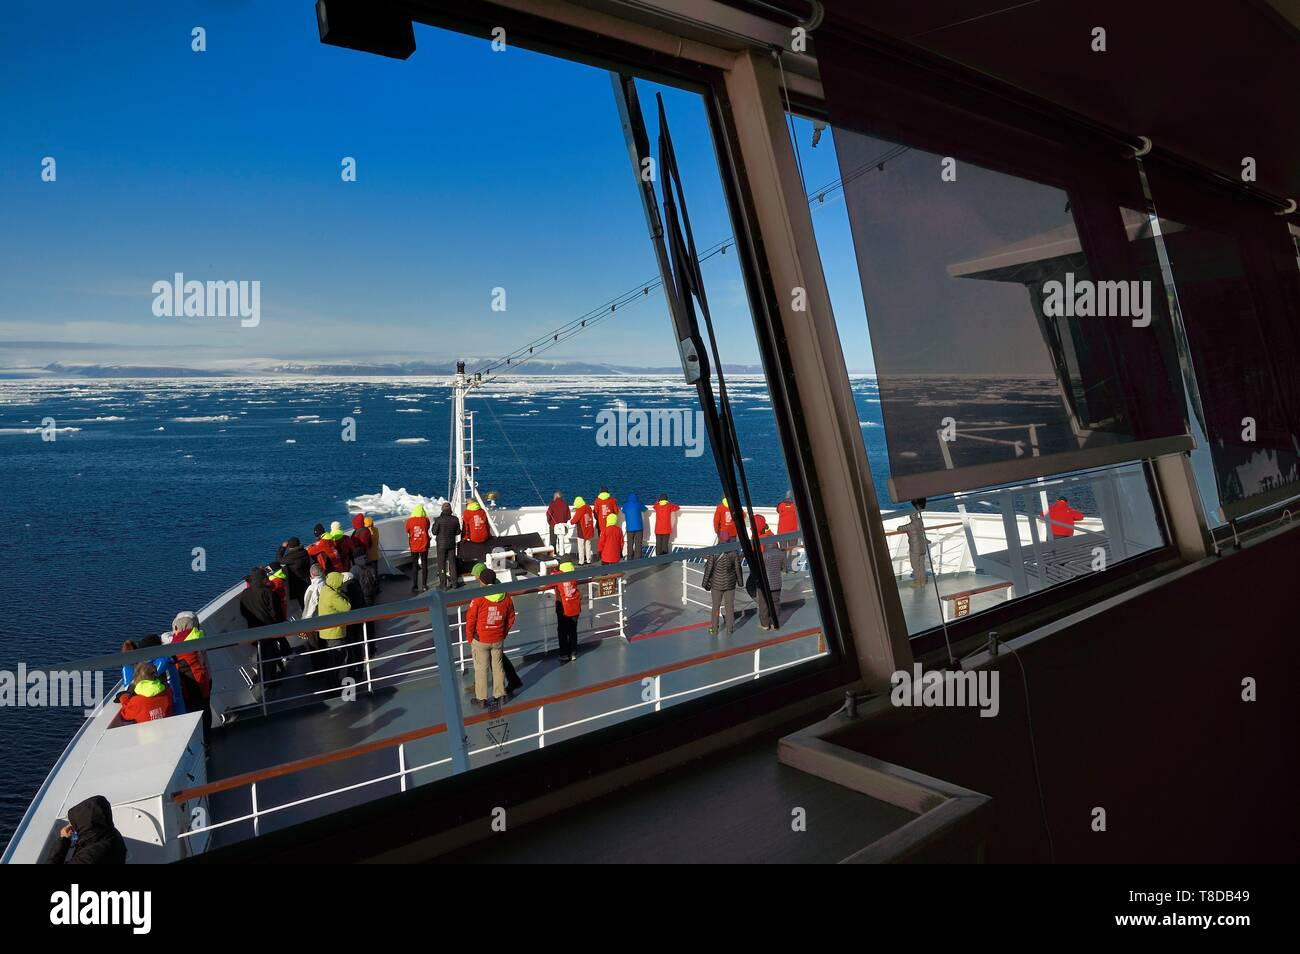 Greenland, North West coast, Smith sound north of Baffin Bay, MS Fram cruse ship from Hurtigruten next to the Arctic sea ice evolving between Greenland and Canada - Stock Image